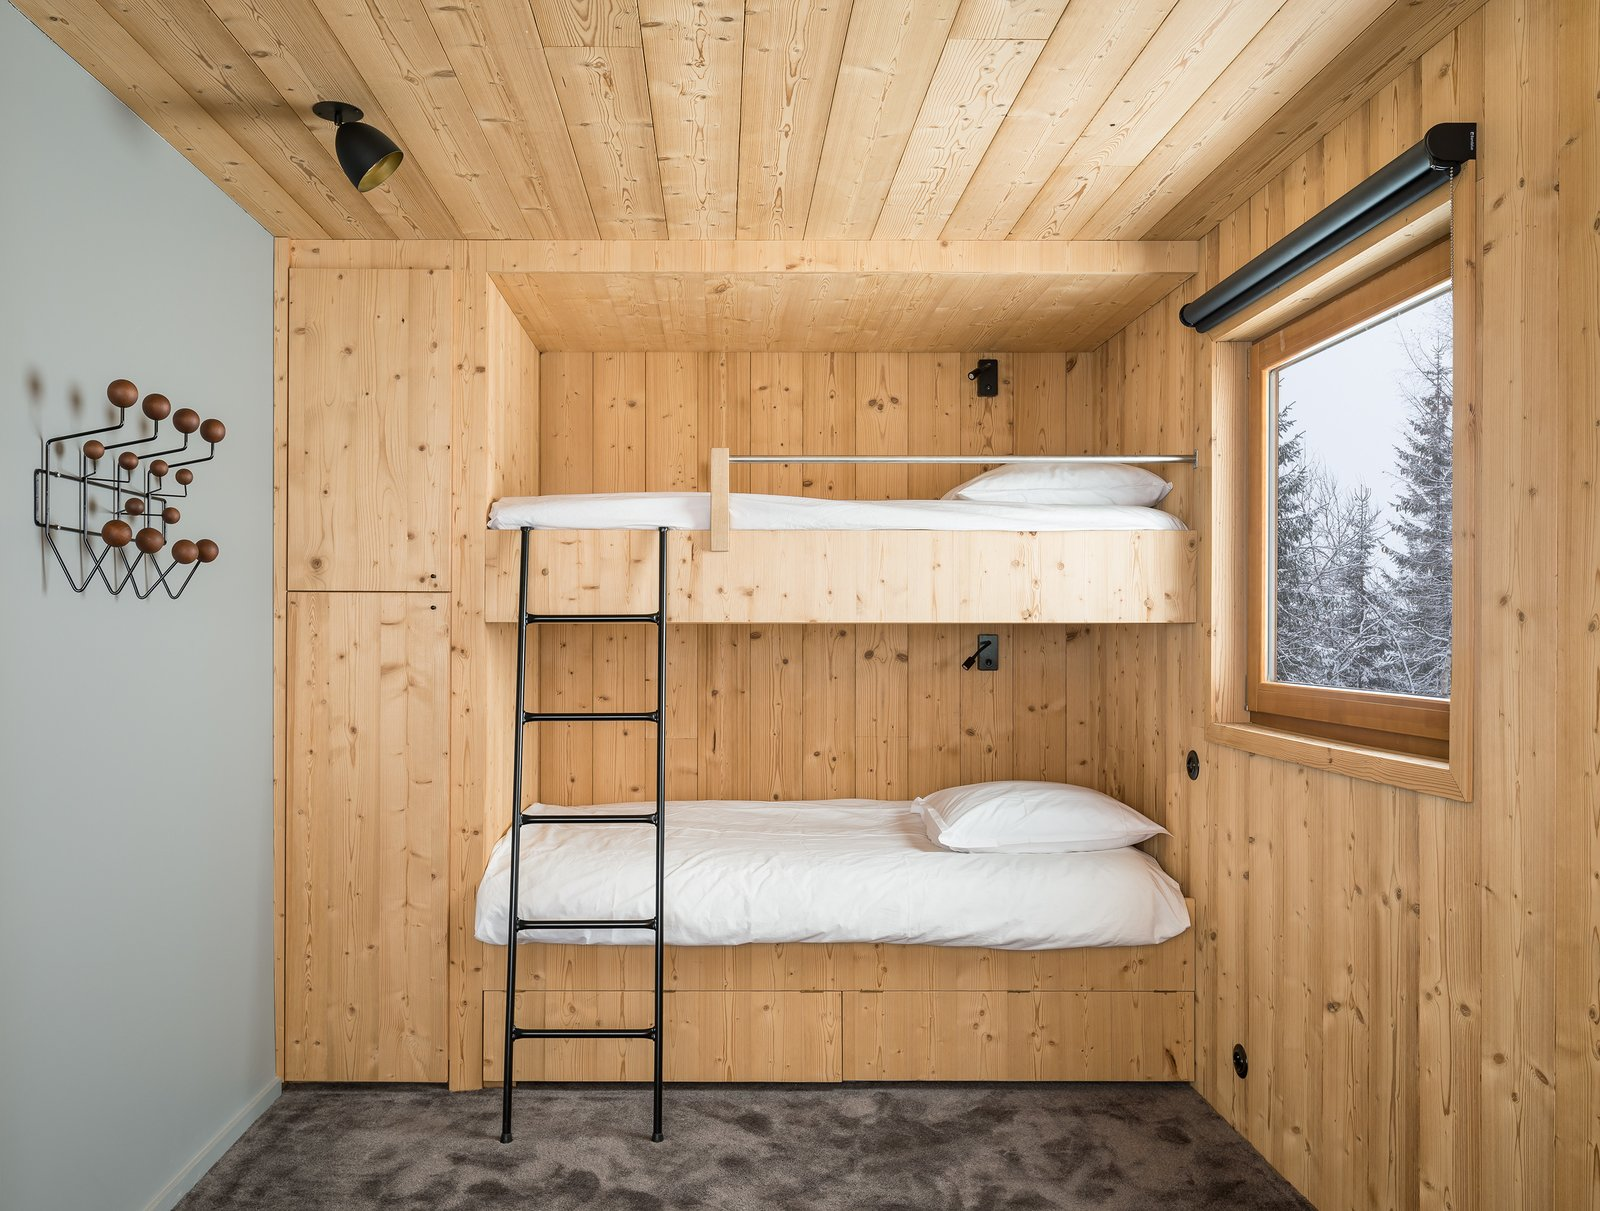 Tagged: Bedroom, Bunks, Ceiling Lighting, Wardrobe, and Carpet Floor. Mountain House by studio razavi architecture